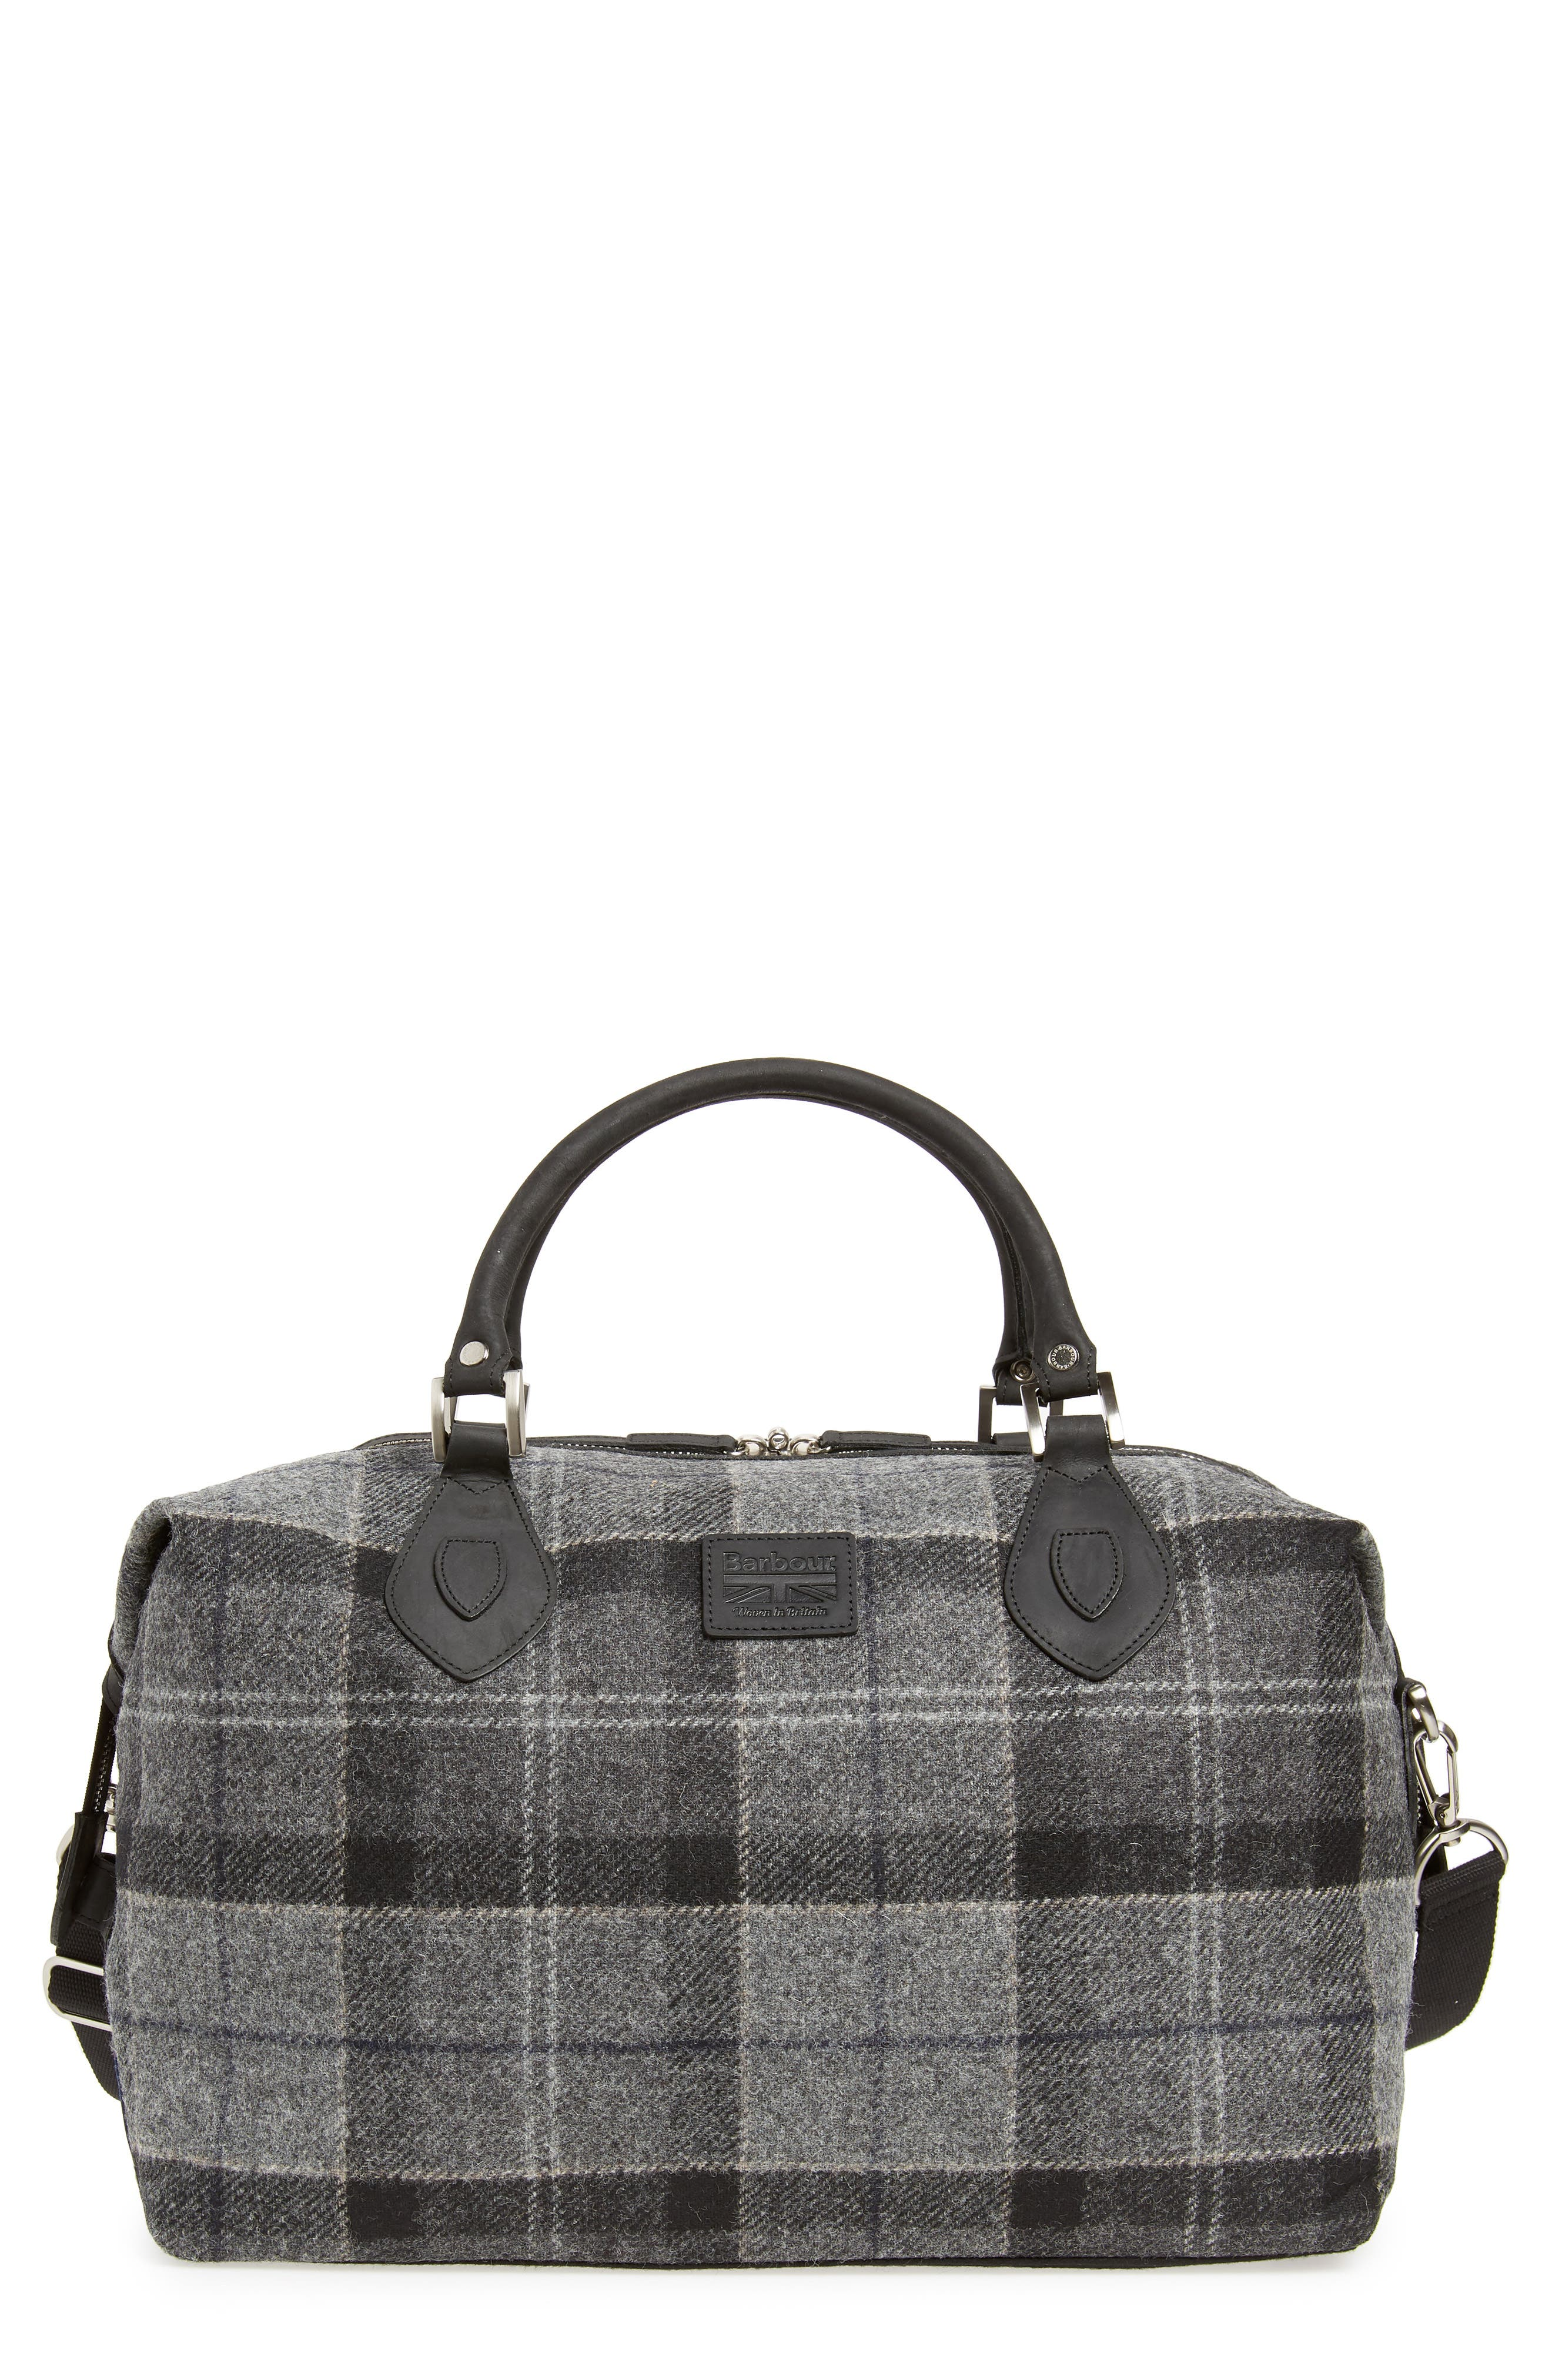 Shadow Duffel Bag,                         Main,                         color, BLACK/ GREY TARTAN